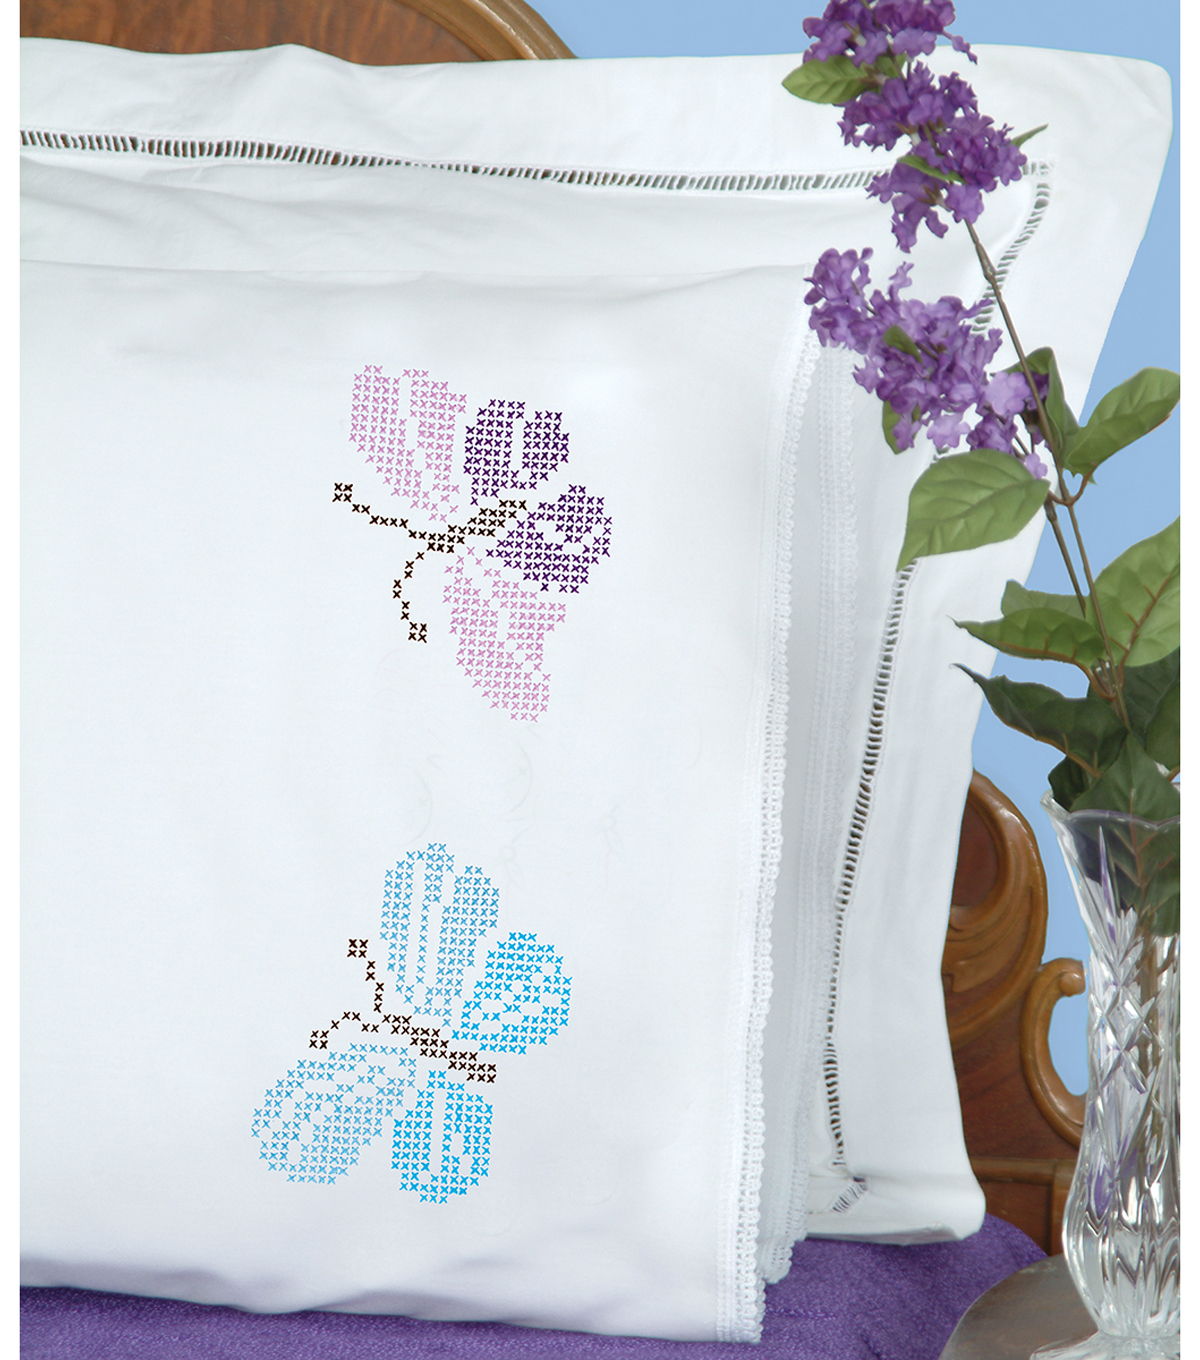 Jack Dempsey Needle Art 2 pk Stamped Lace Edge Pillowcases-XX Butterfly